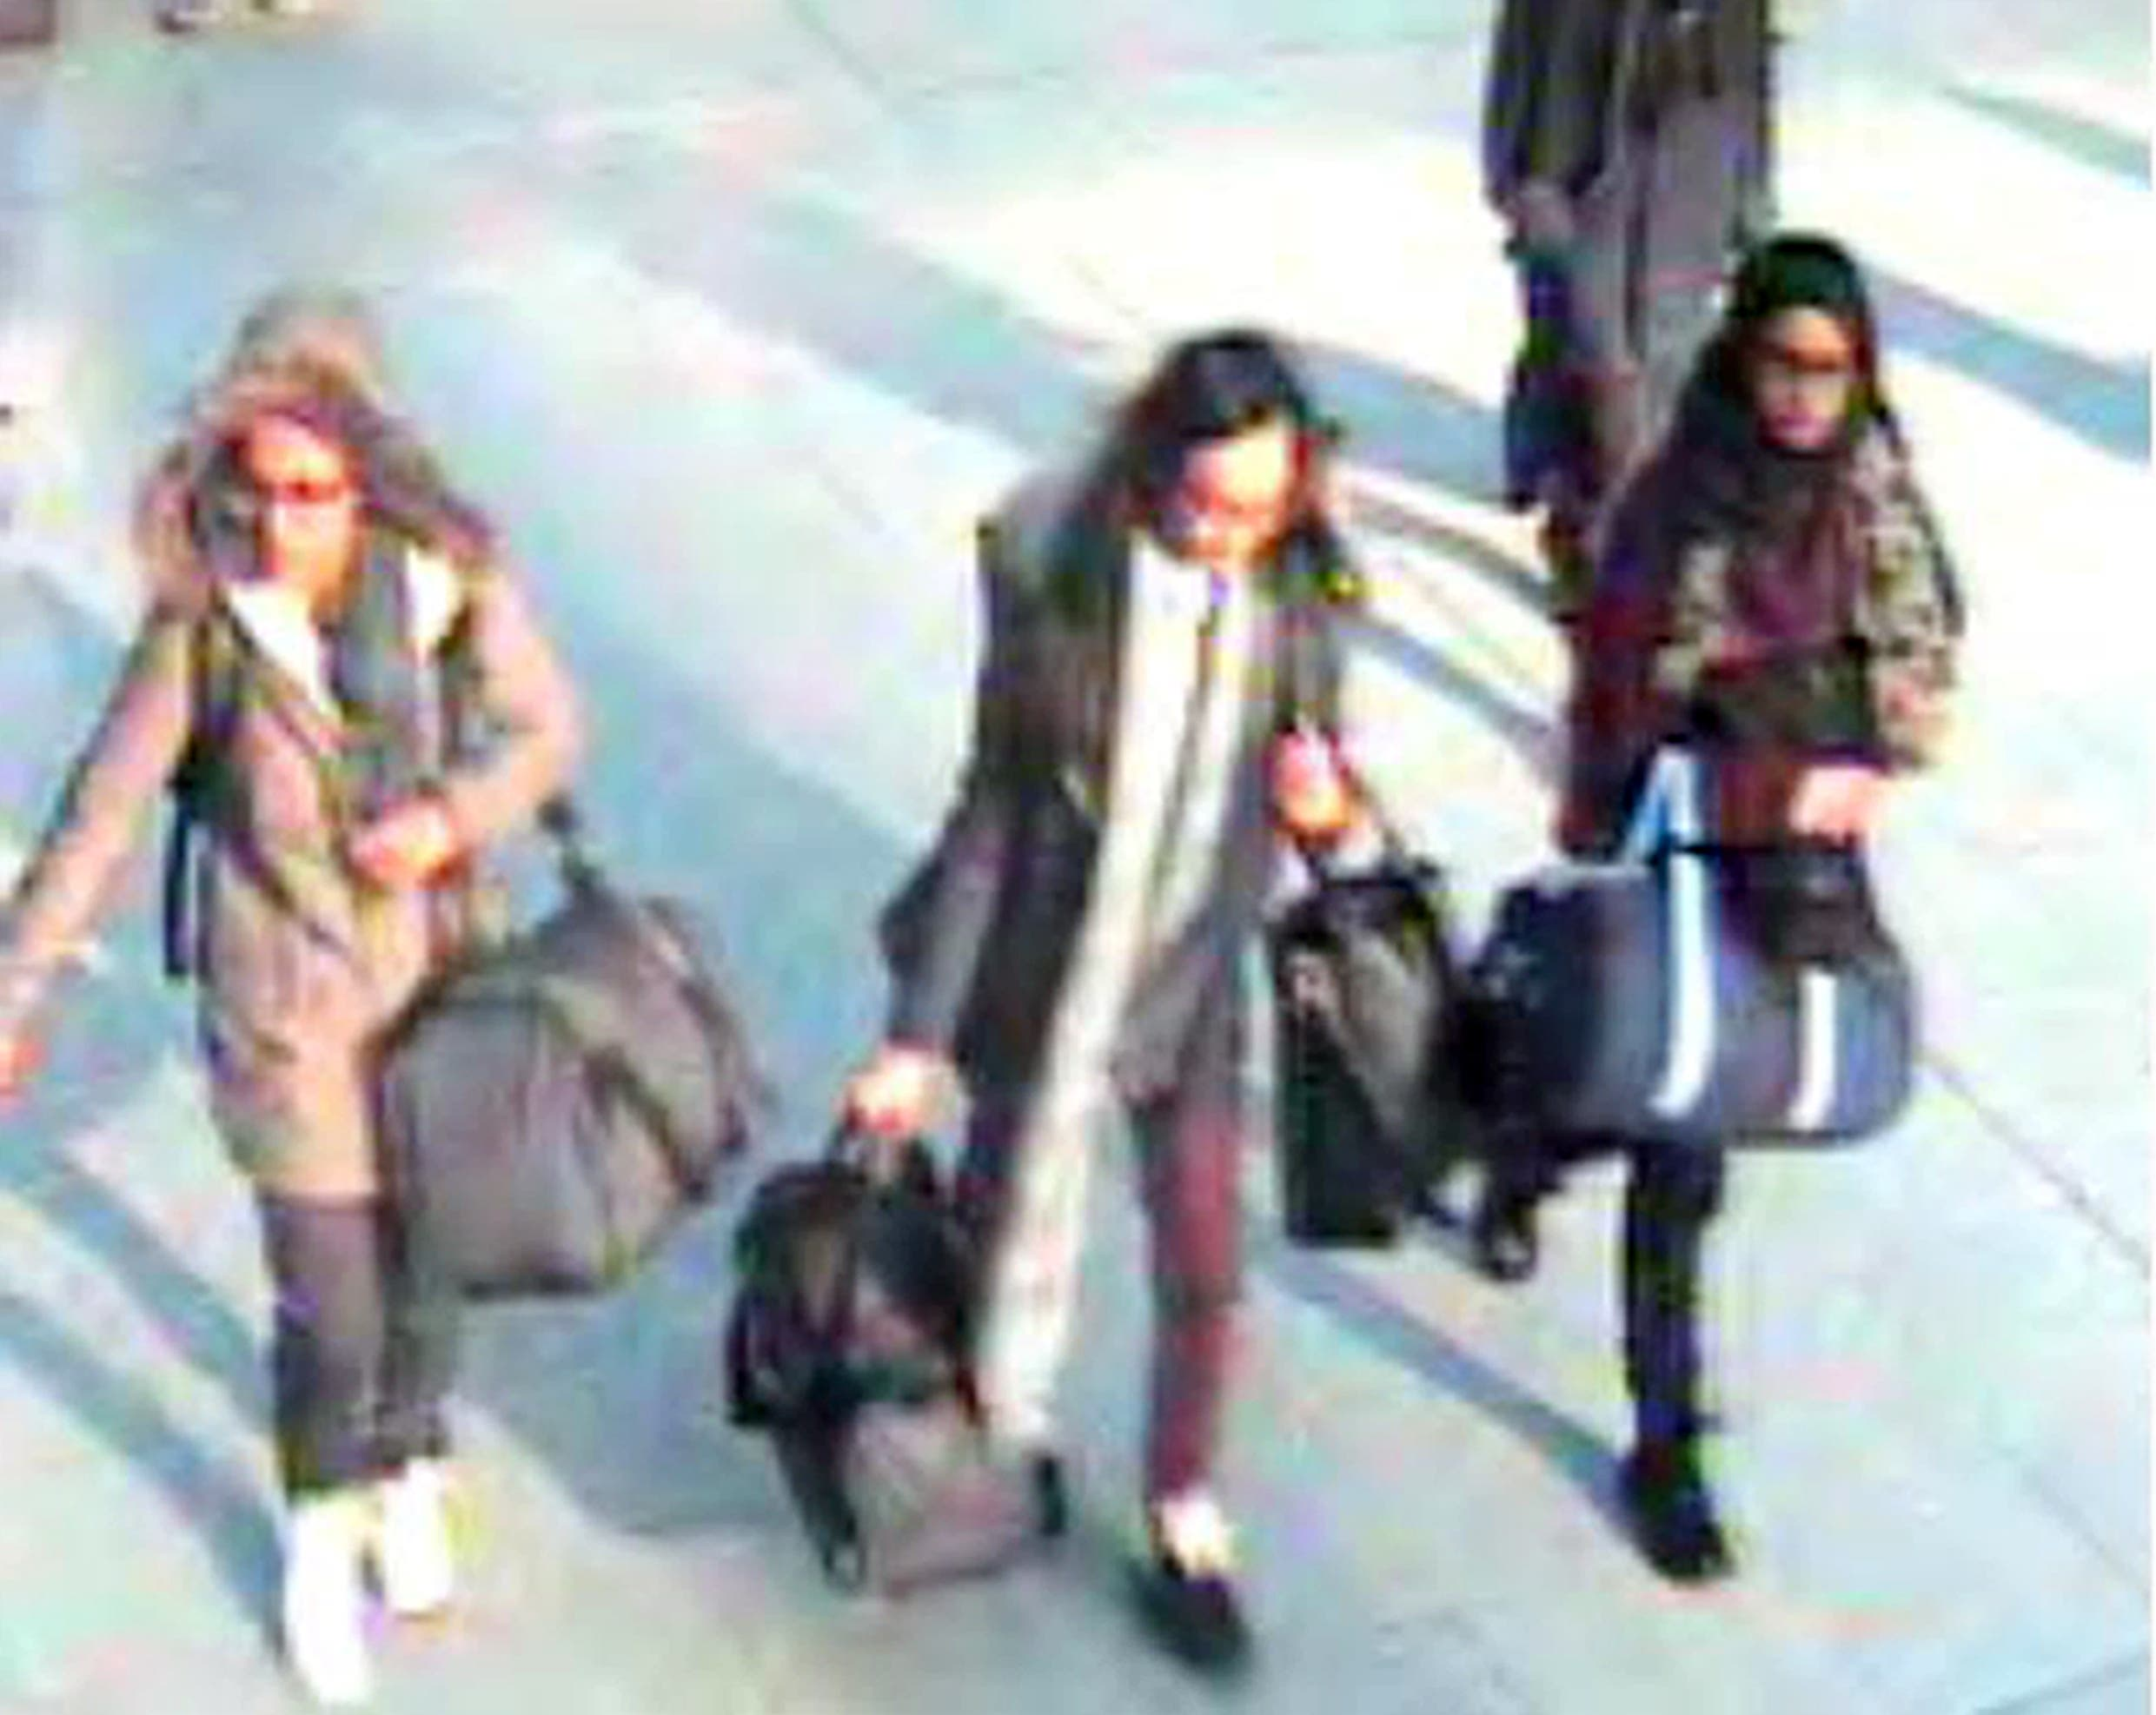 In this still taken from CCTV issued by the Metropolitan Police in London on Feb. 23, 2015, 15-year-old Amira Abase, left, Kadiza Sultana,16, center, and Shamima Begum, 15, walk through Gatwick airport, south of London, before catching their flight to Turkey on Tuesday Feb 17, 2015. (AP)